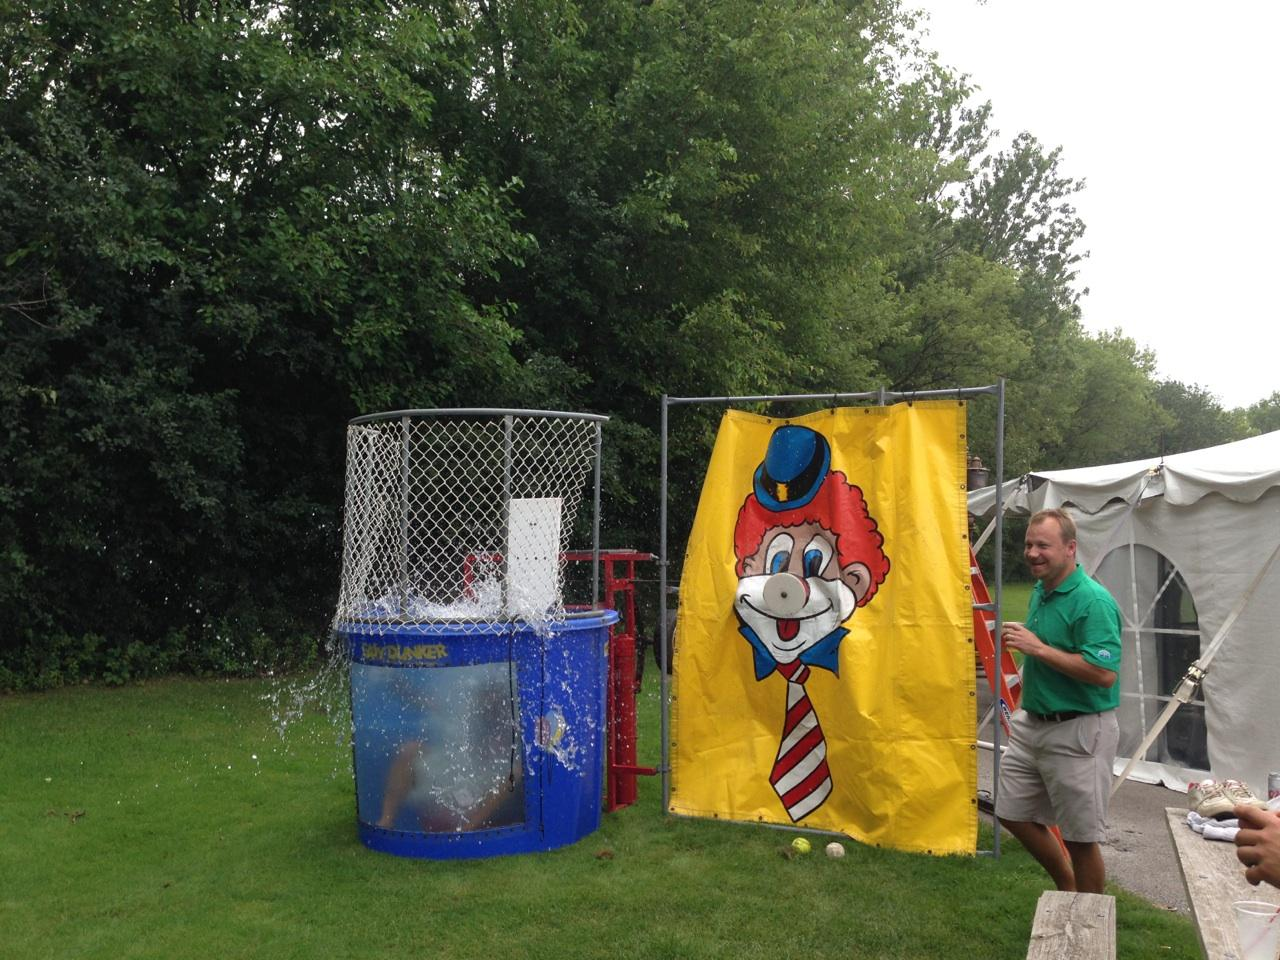 World Biggest In The Dunk: Billy Casper Digital Network: BCG Employee Takes A Dunk